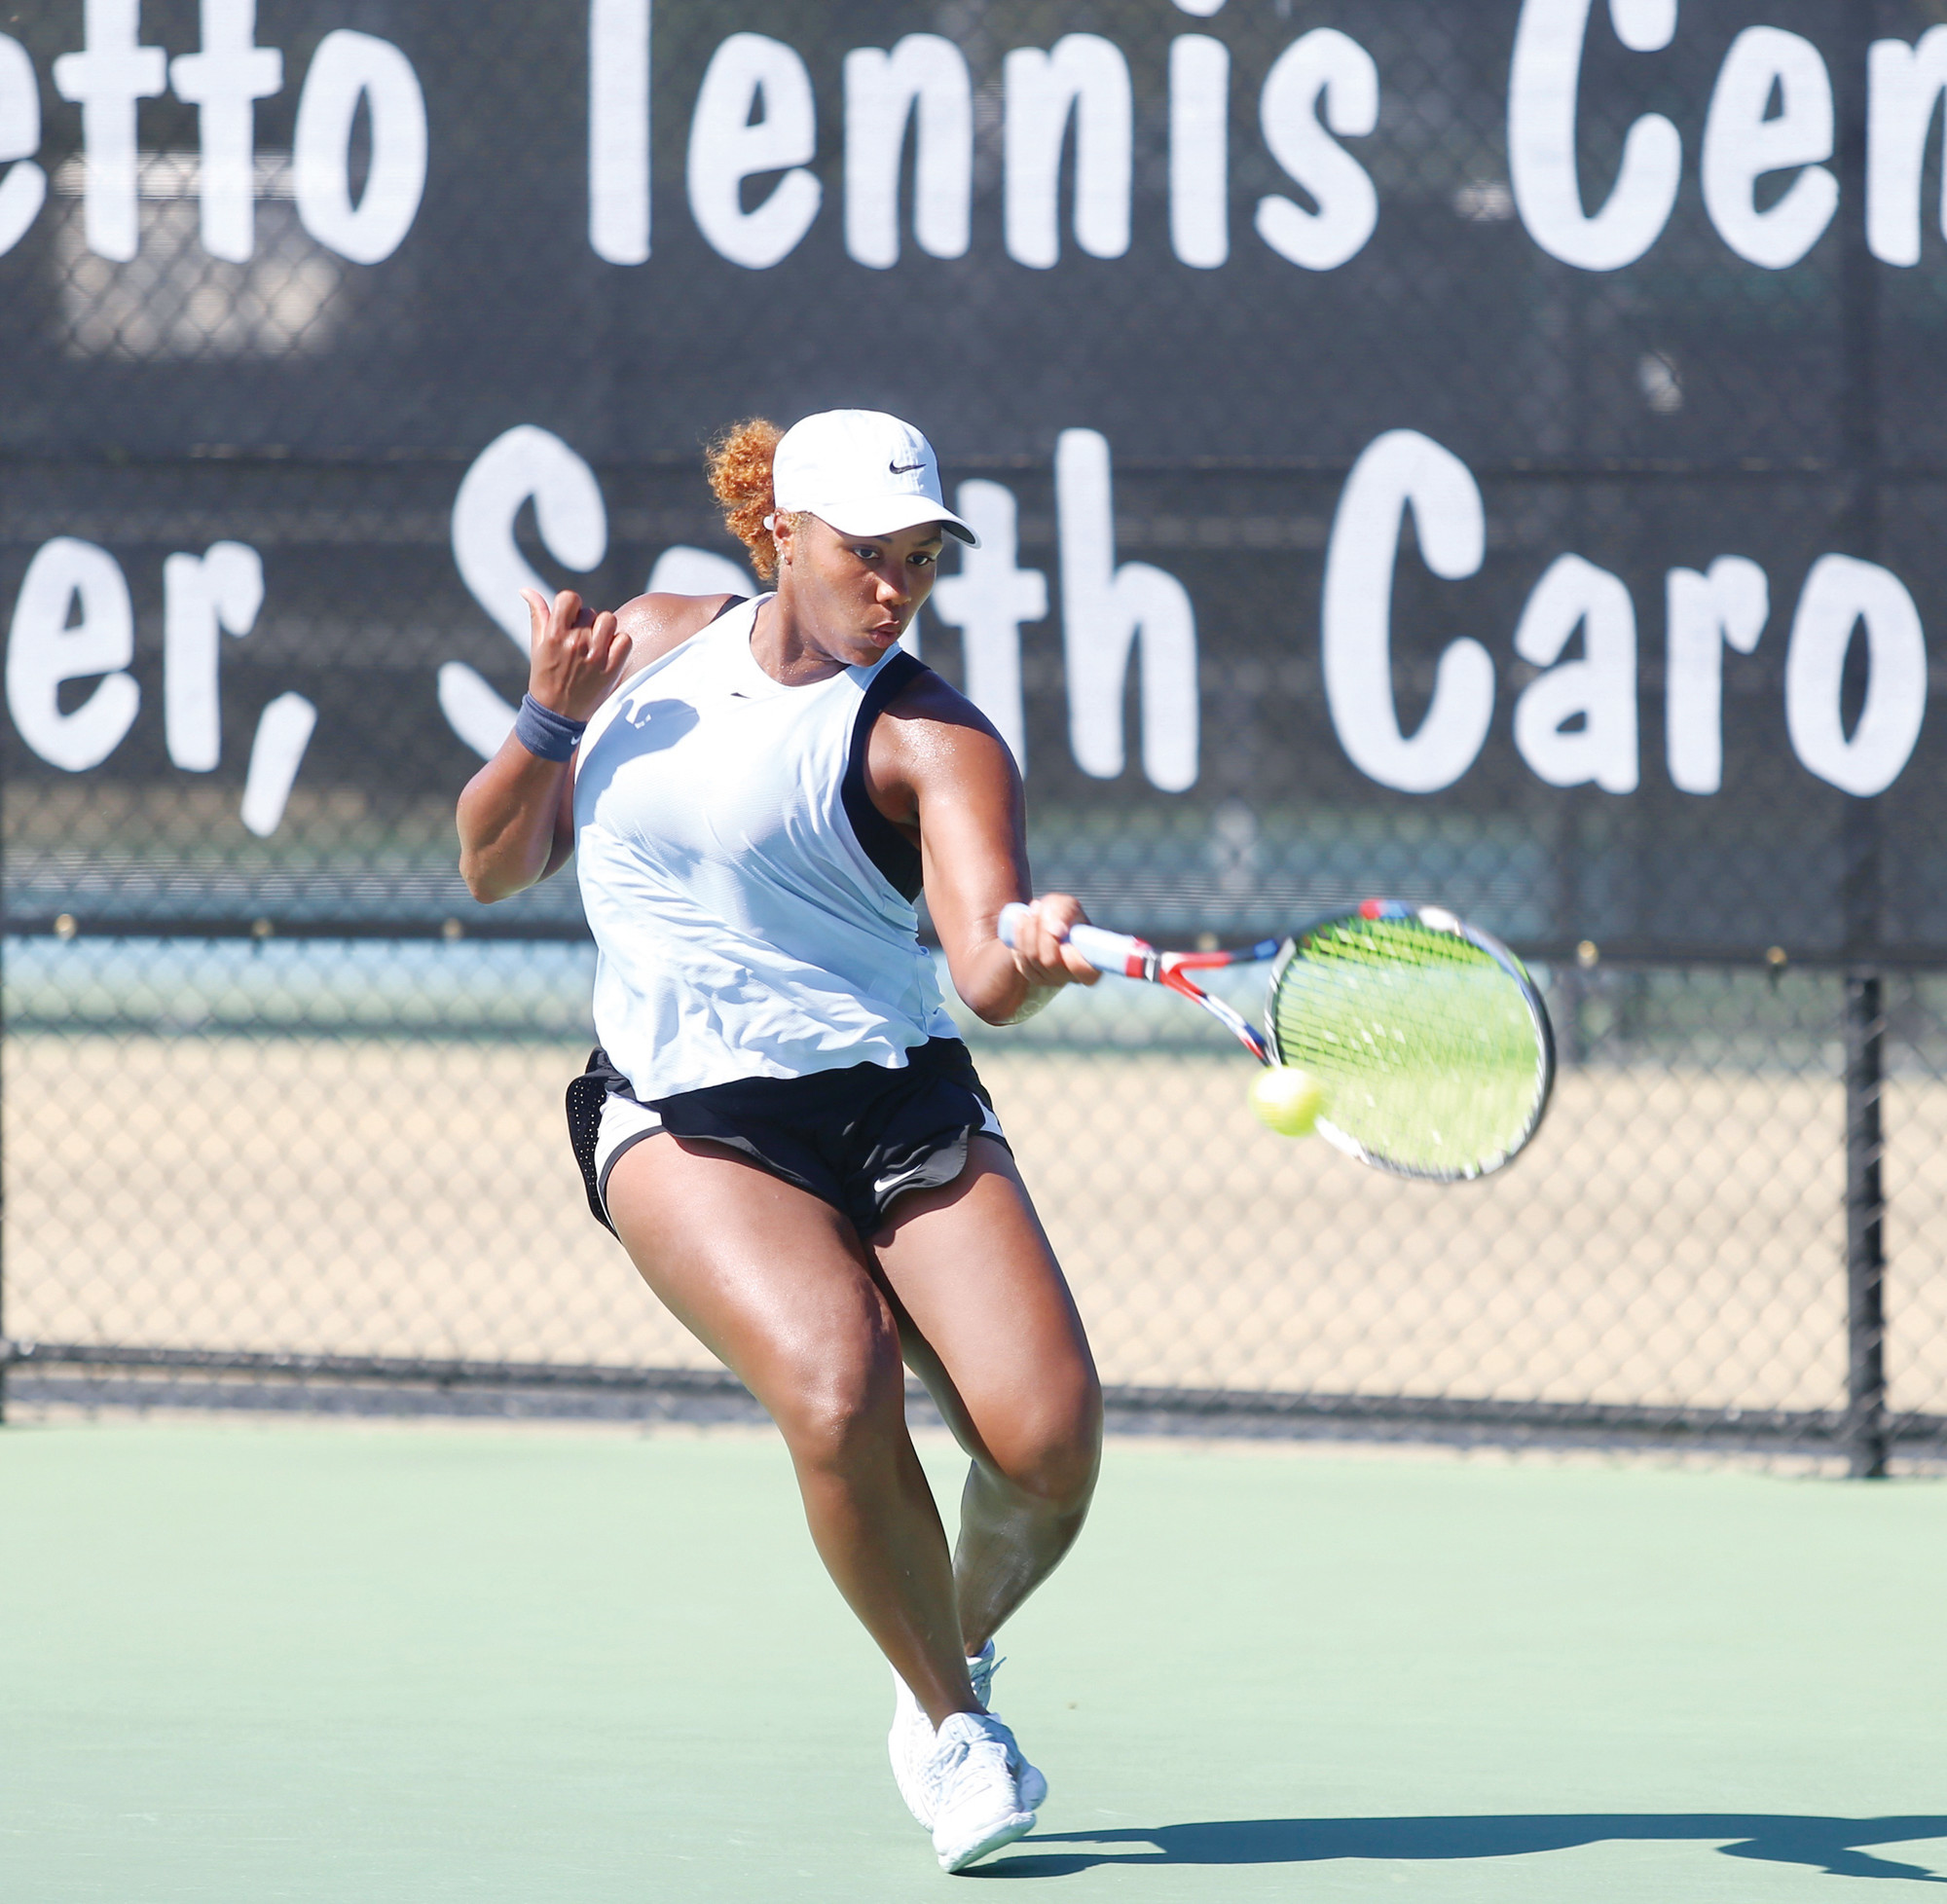 Taylor Townsend, the 71st-ranked professional women's tennis player in the world, is the top seed for the Palmetto Pro Open, which gets underway today with qualifying at the Palmetto Tennis Center.